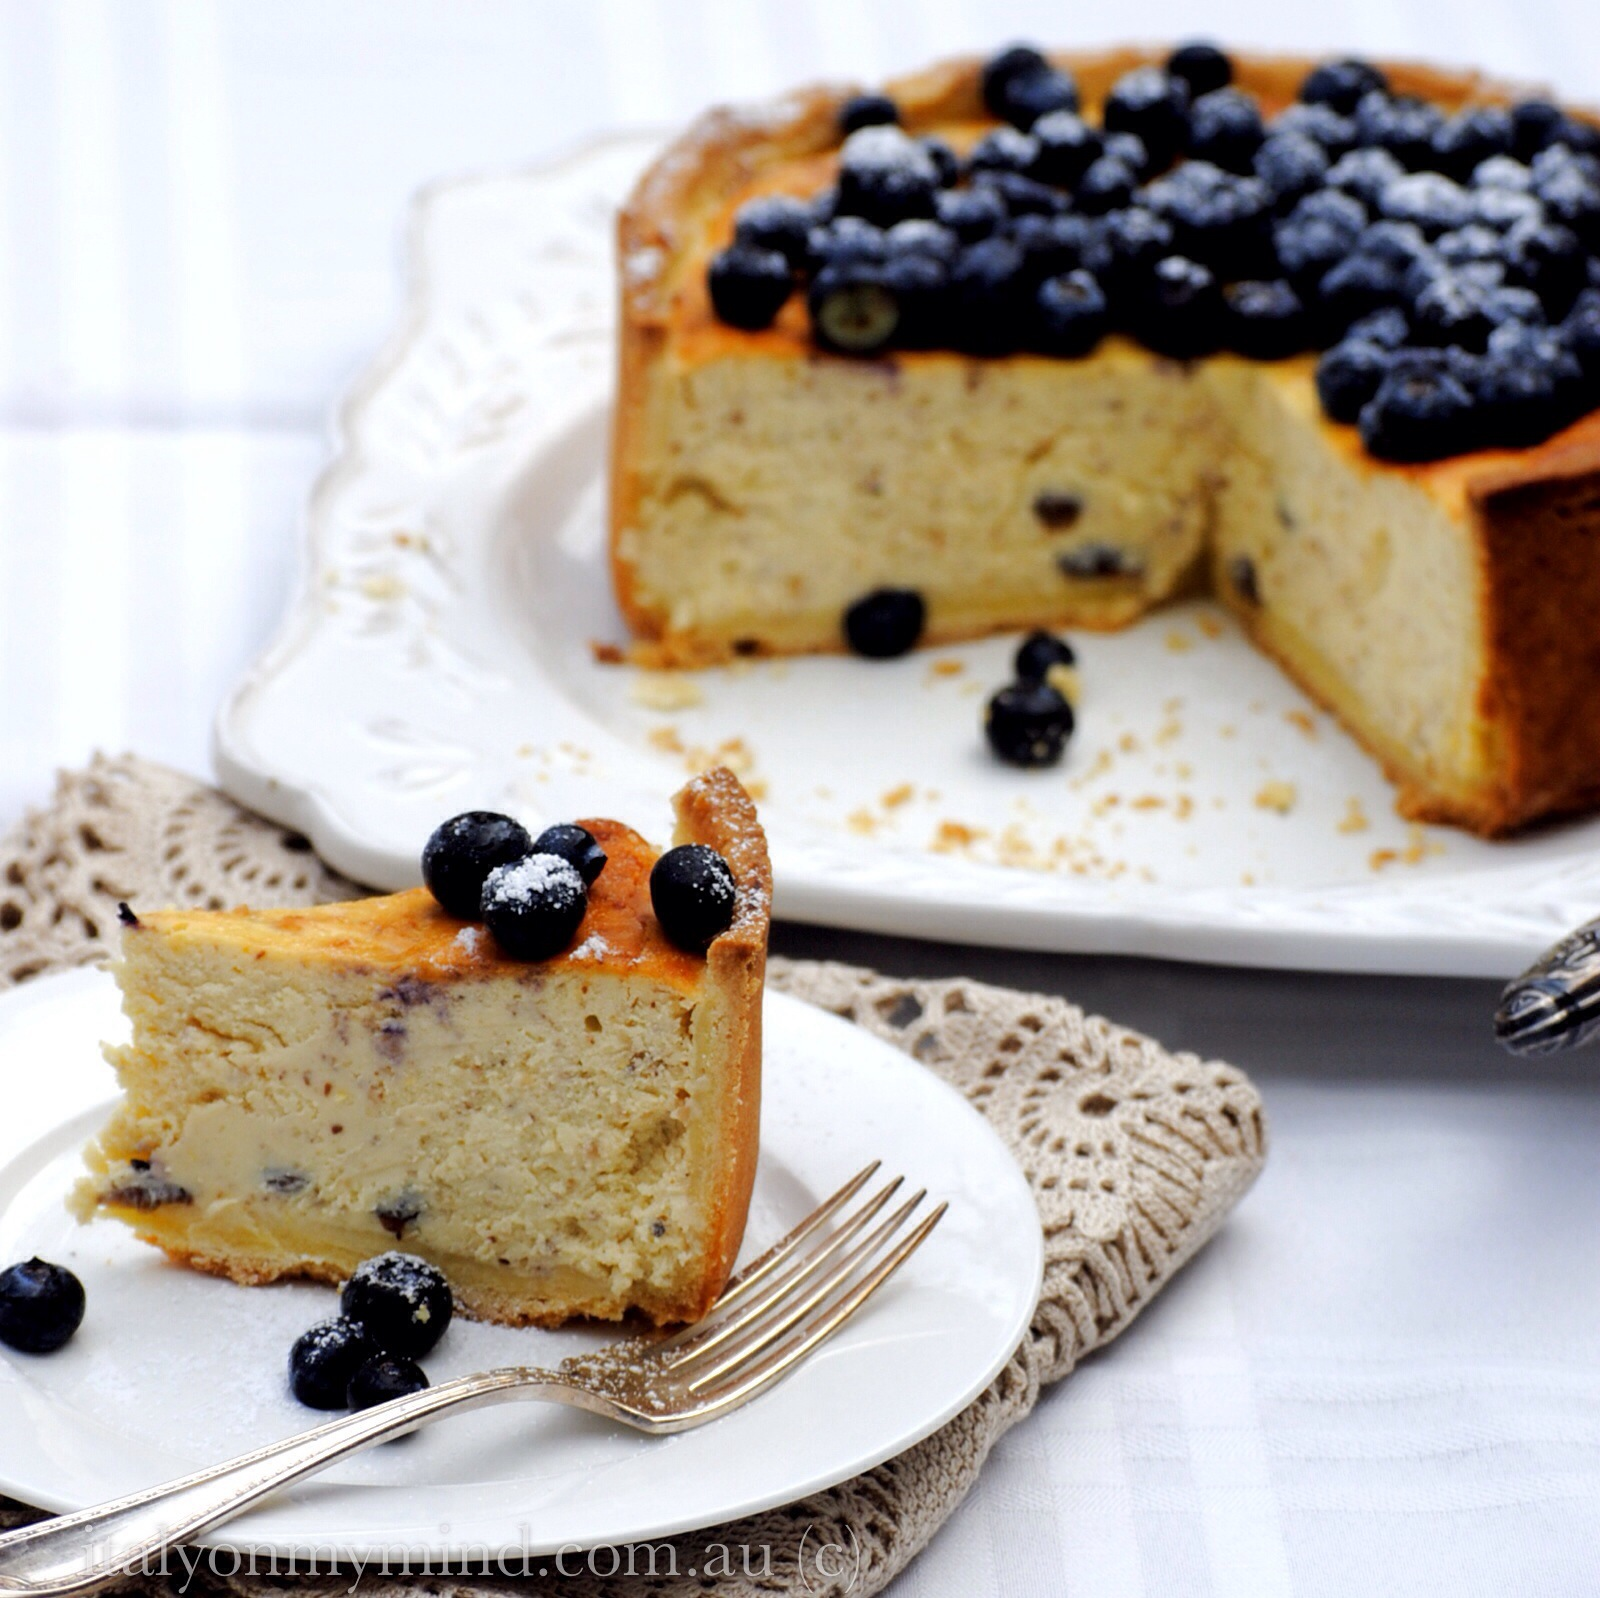 Italian baked ricotta cheesecake with blueberries | italy on my mind